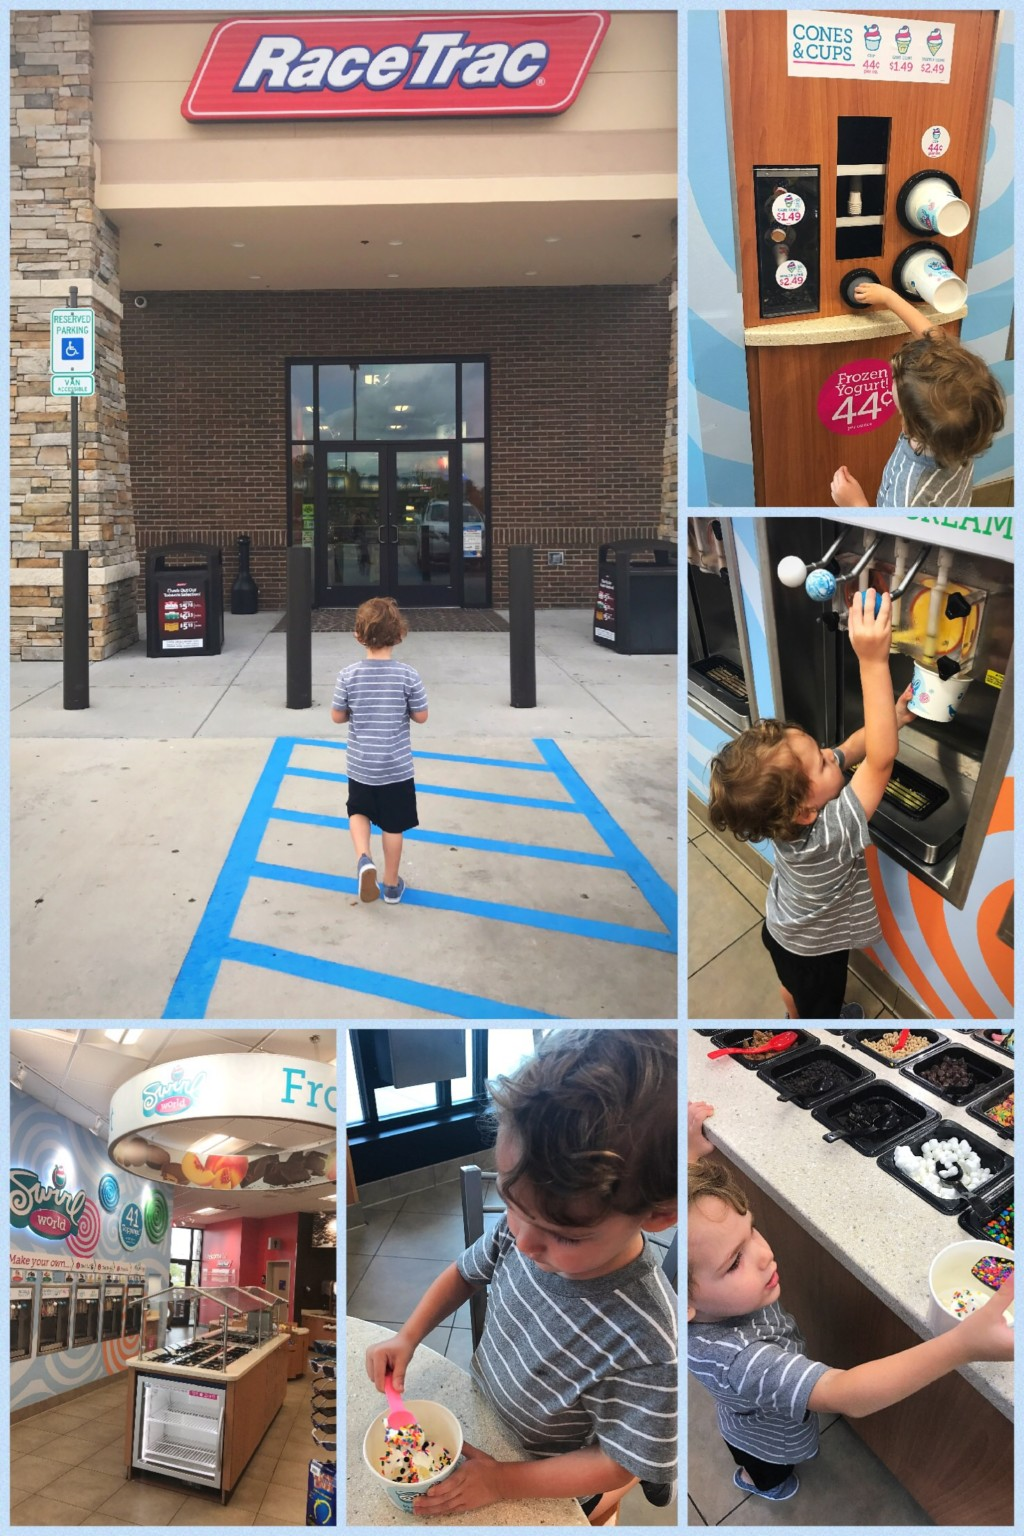 Summer Swirlin' With The Family at RaceTrac